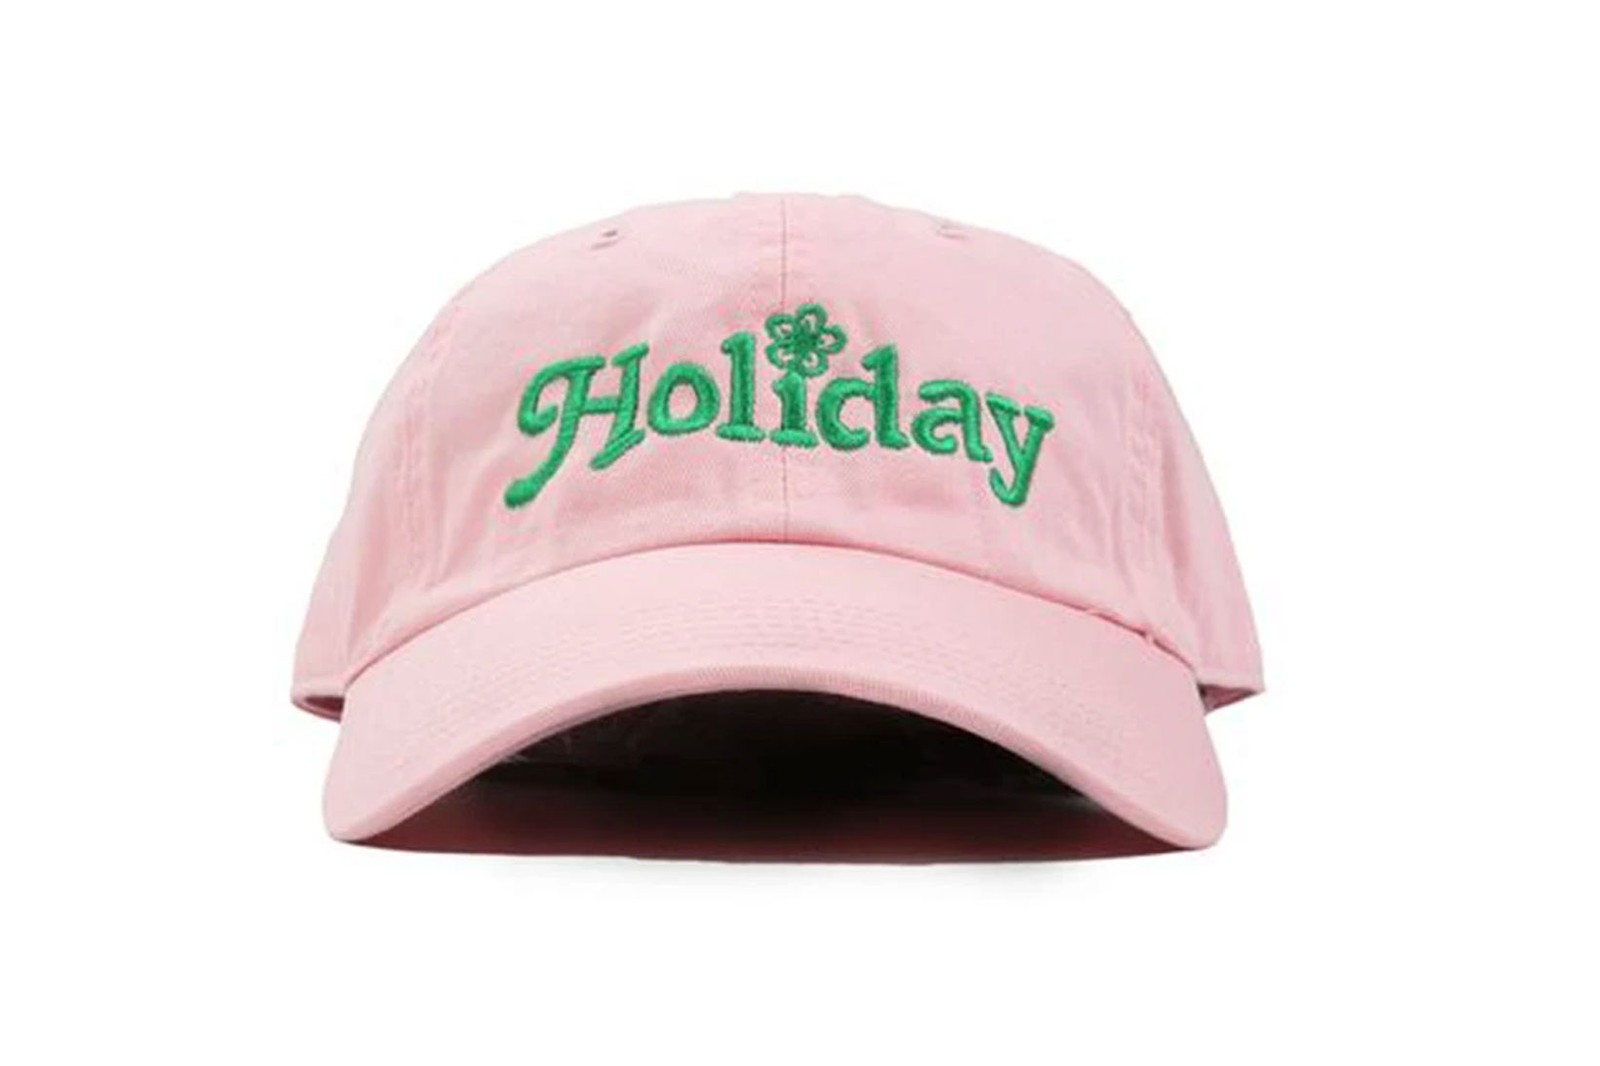 Lack of Color 2021 summer sun straw hat beach outdoor